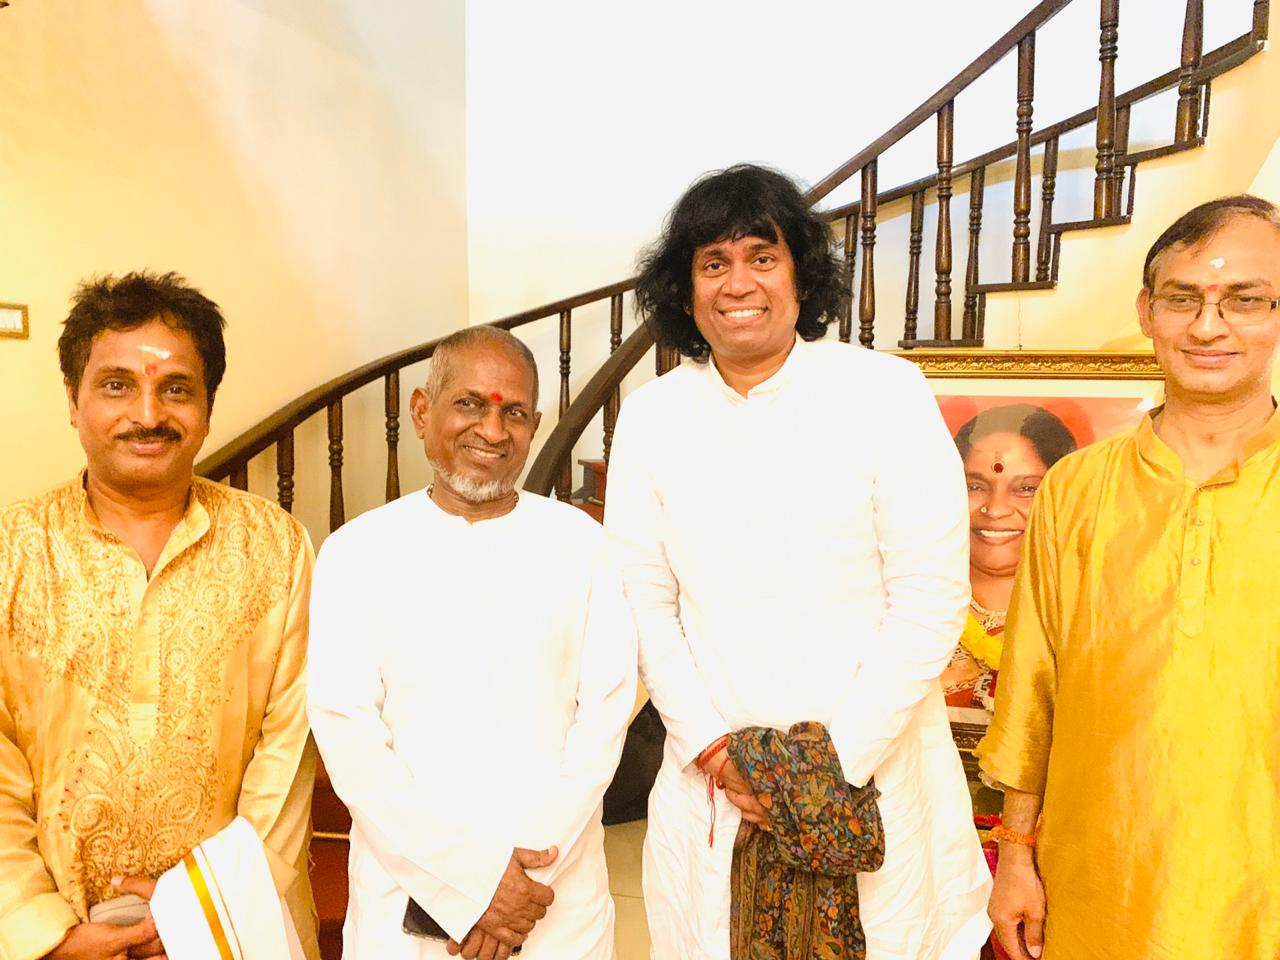 mandolin-u-rajesh-along-with-ilayaraja-sir-at-navaratri-concert